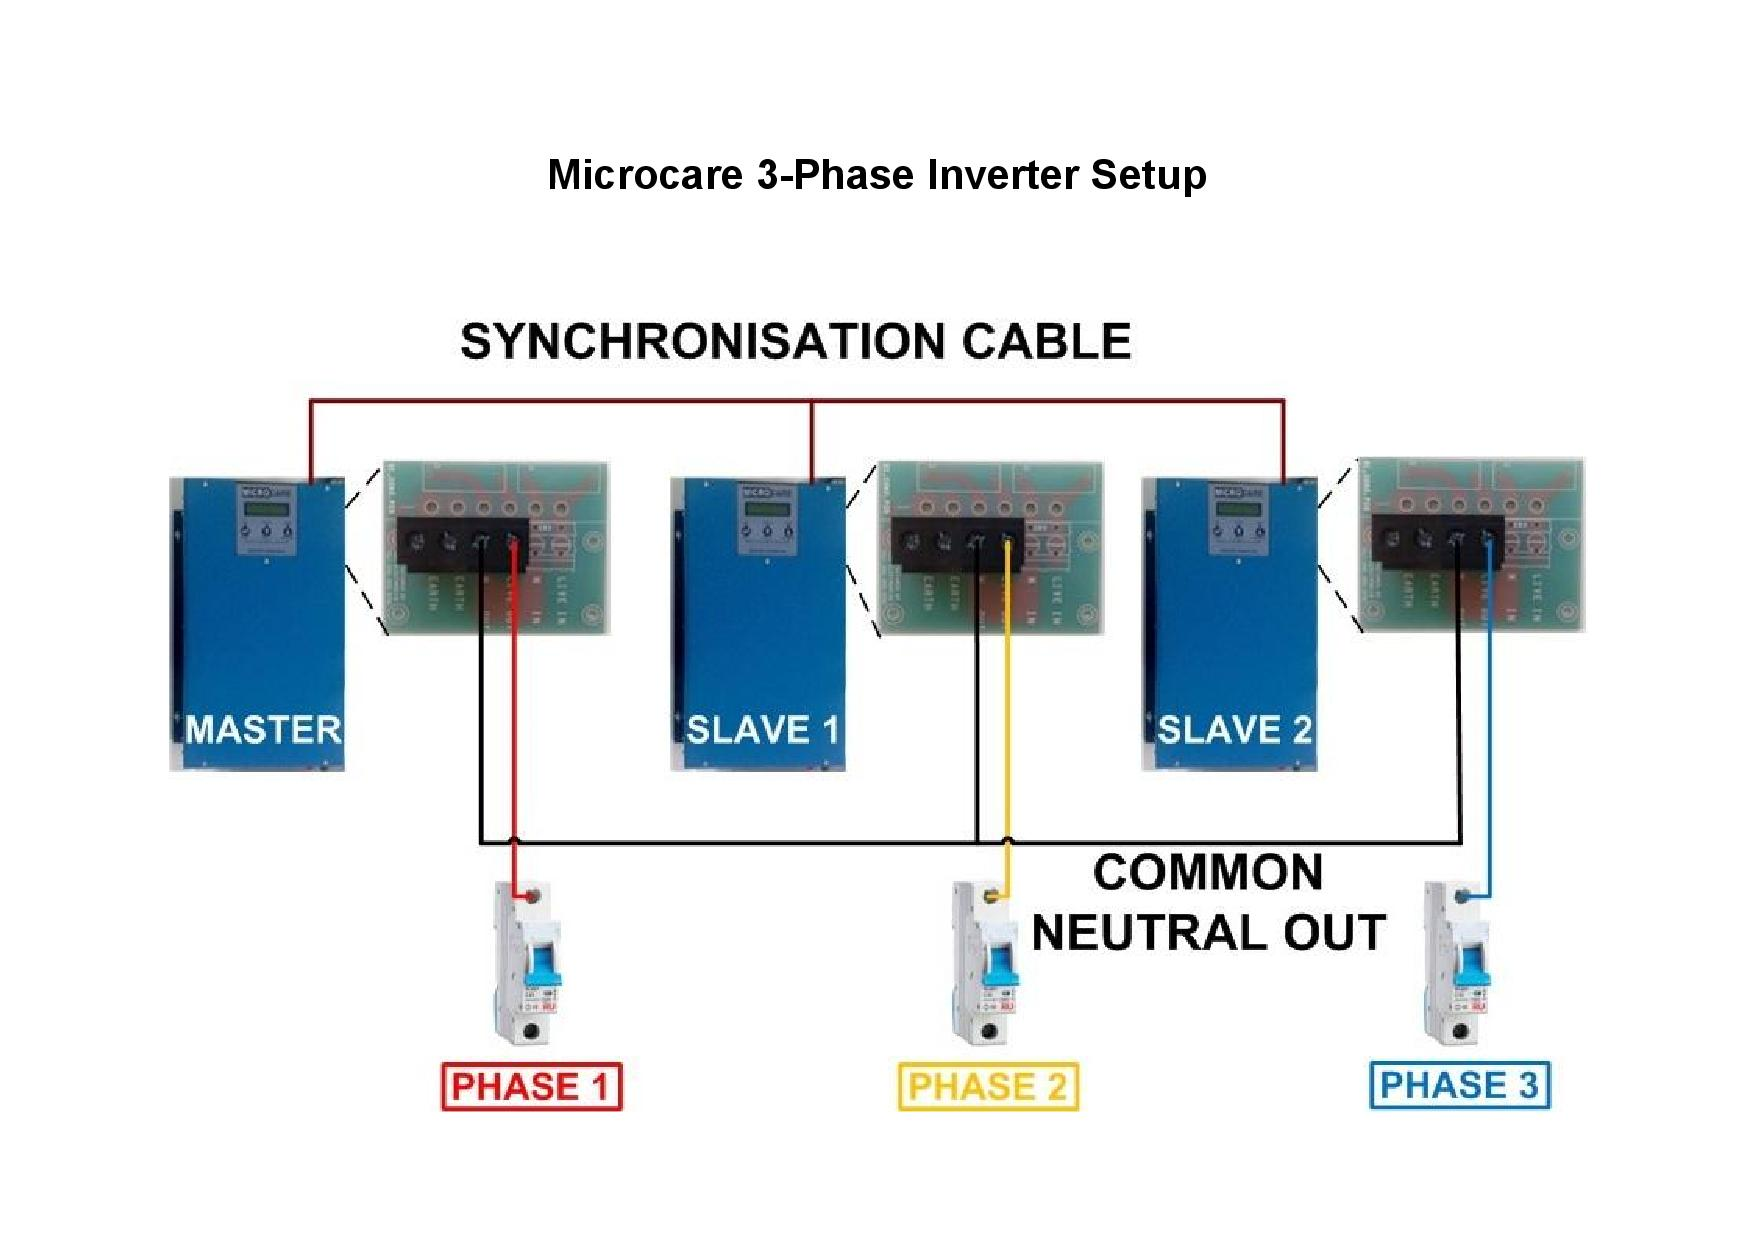 Kaco Pv Inverter Wiring Diagrams Schematics Diagram Setup 3 Phase Drawing Page 001 Microcare Solar Generator